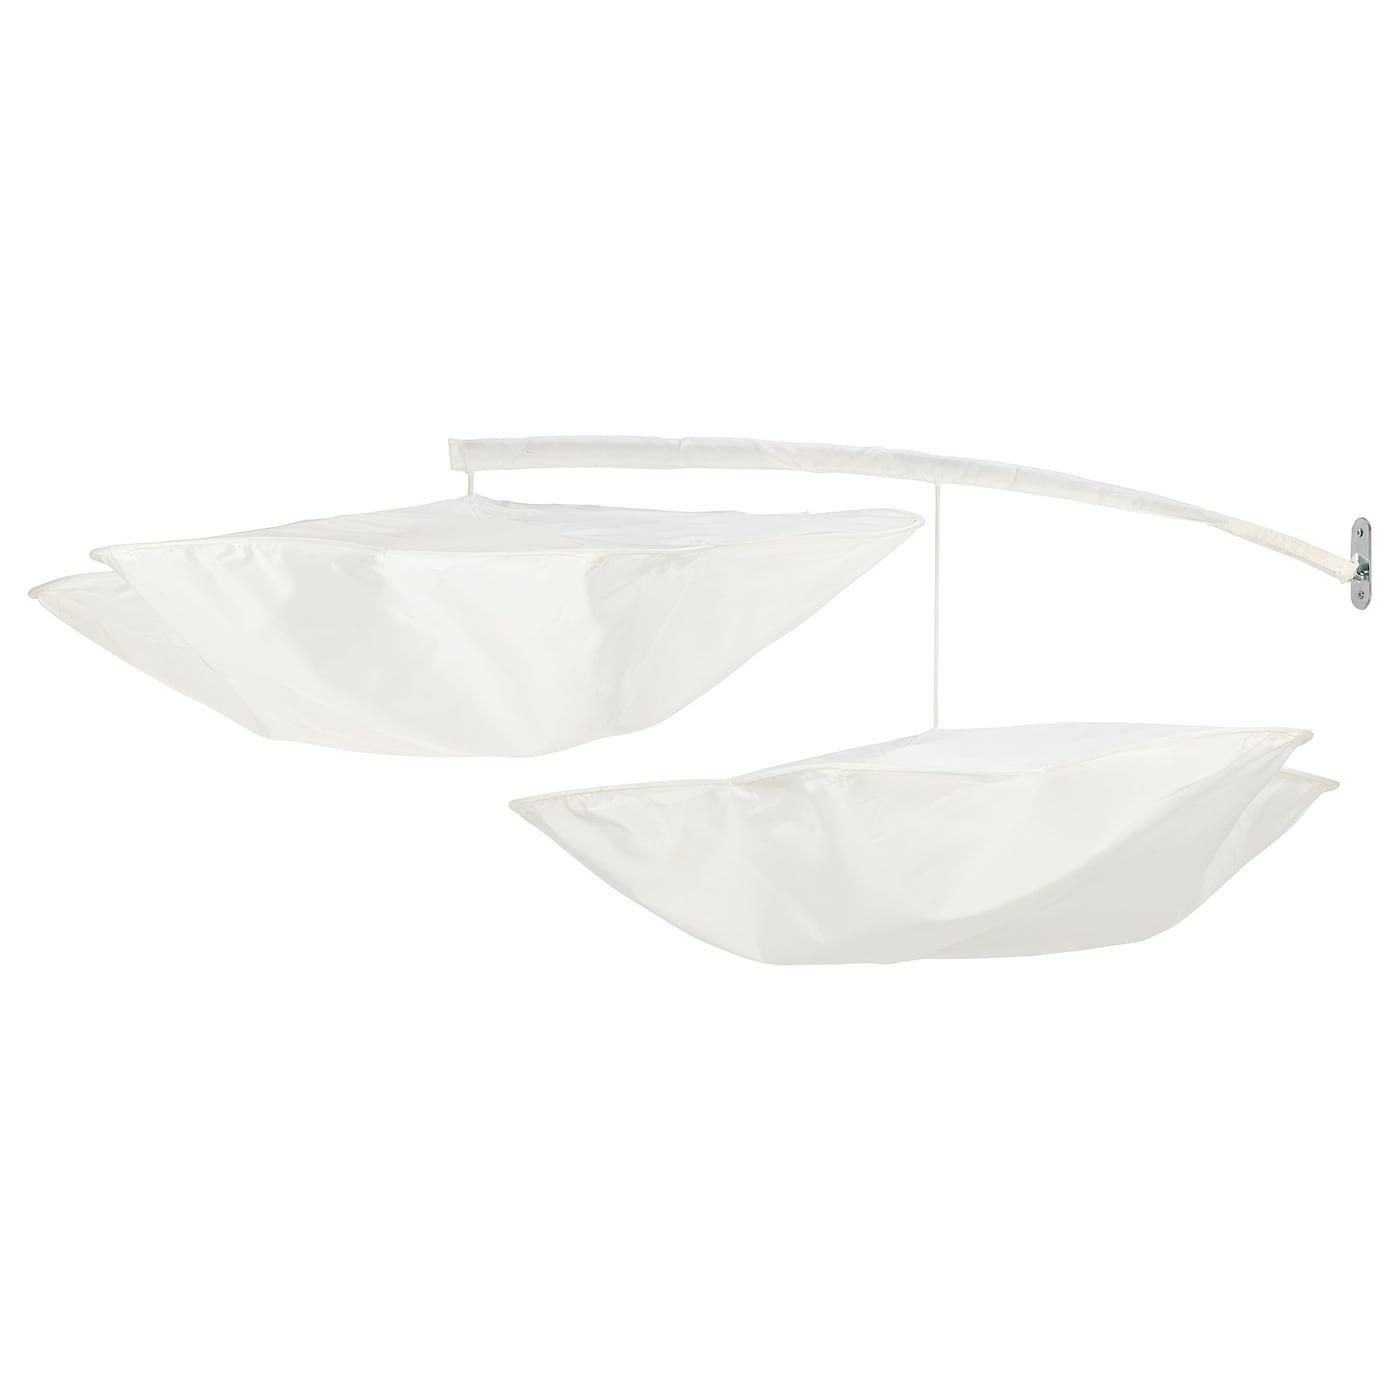 IKEA HIMMELSK bed canopy Filters the light, creates an atmosphere without blacking out.